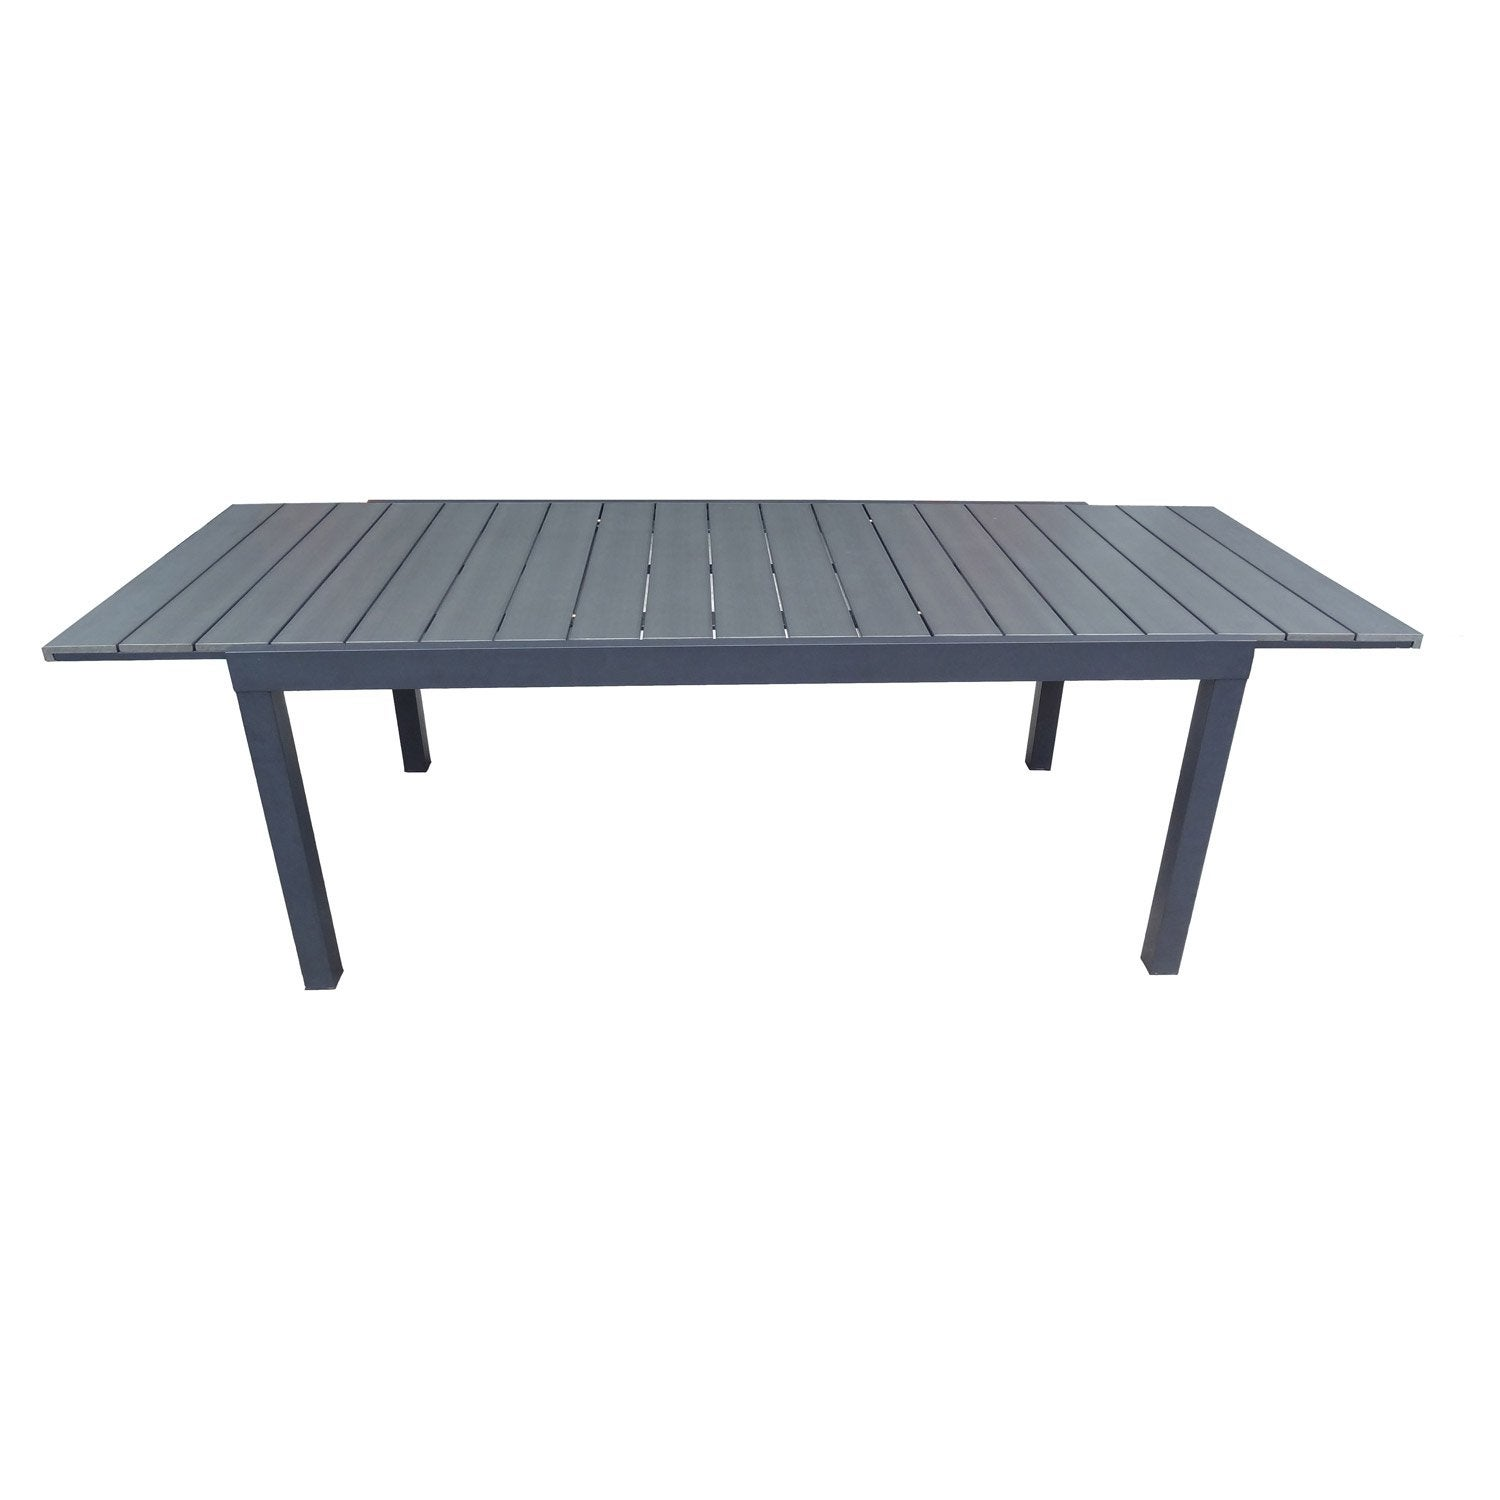 Table De Jardin Naterial Pratt Rectangulaire Gris Leroy Merlin